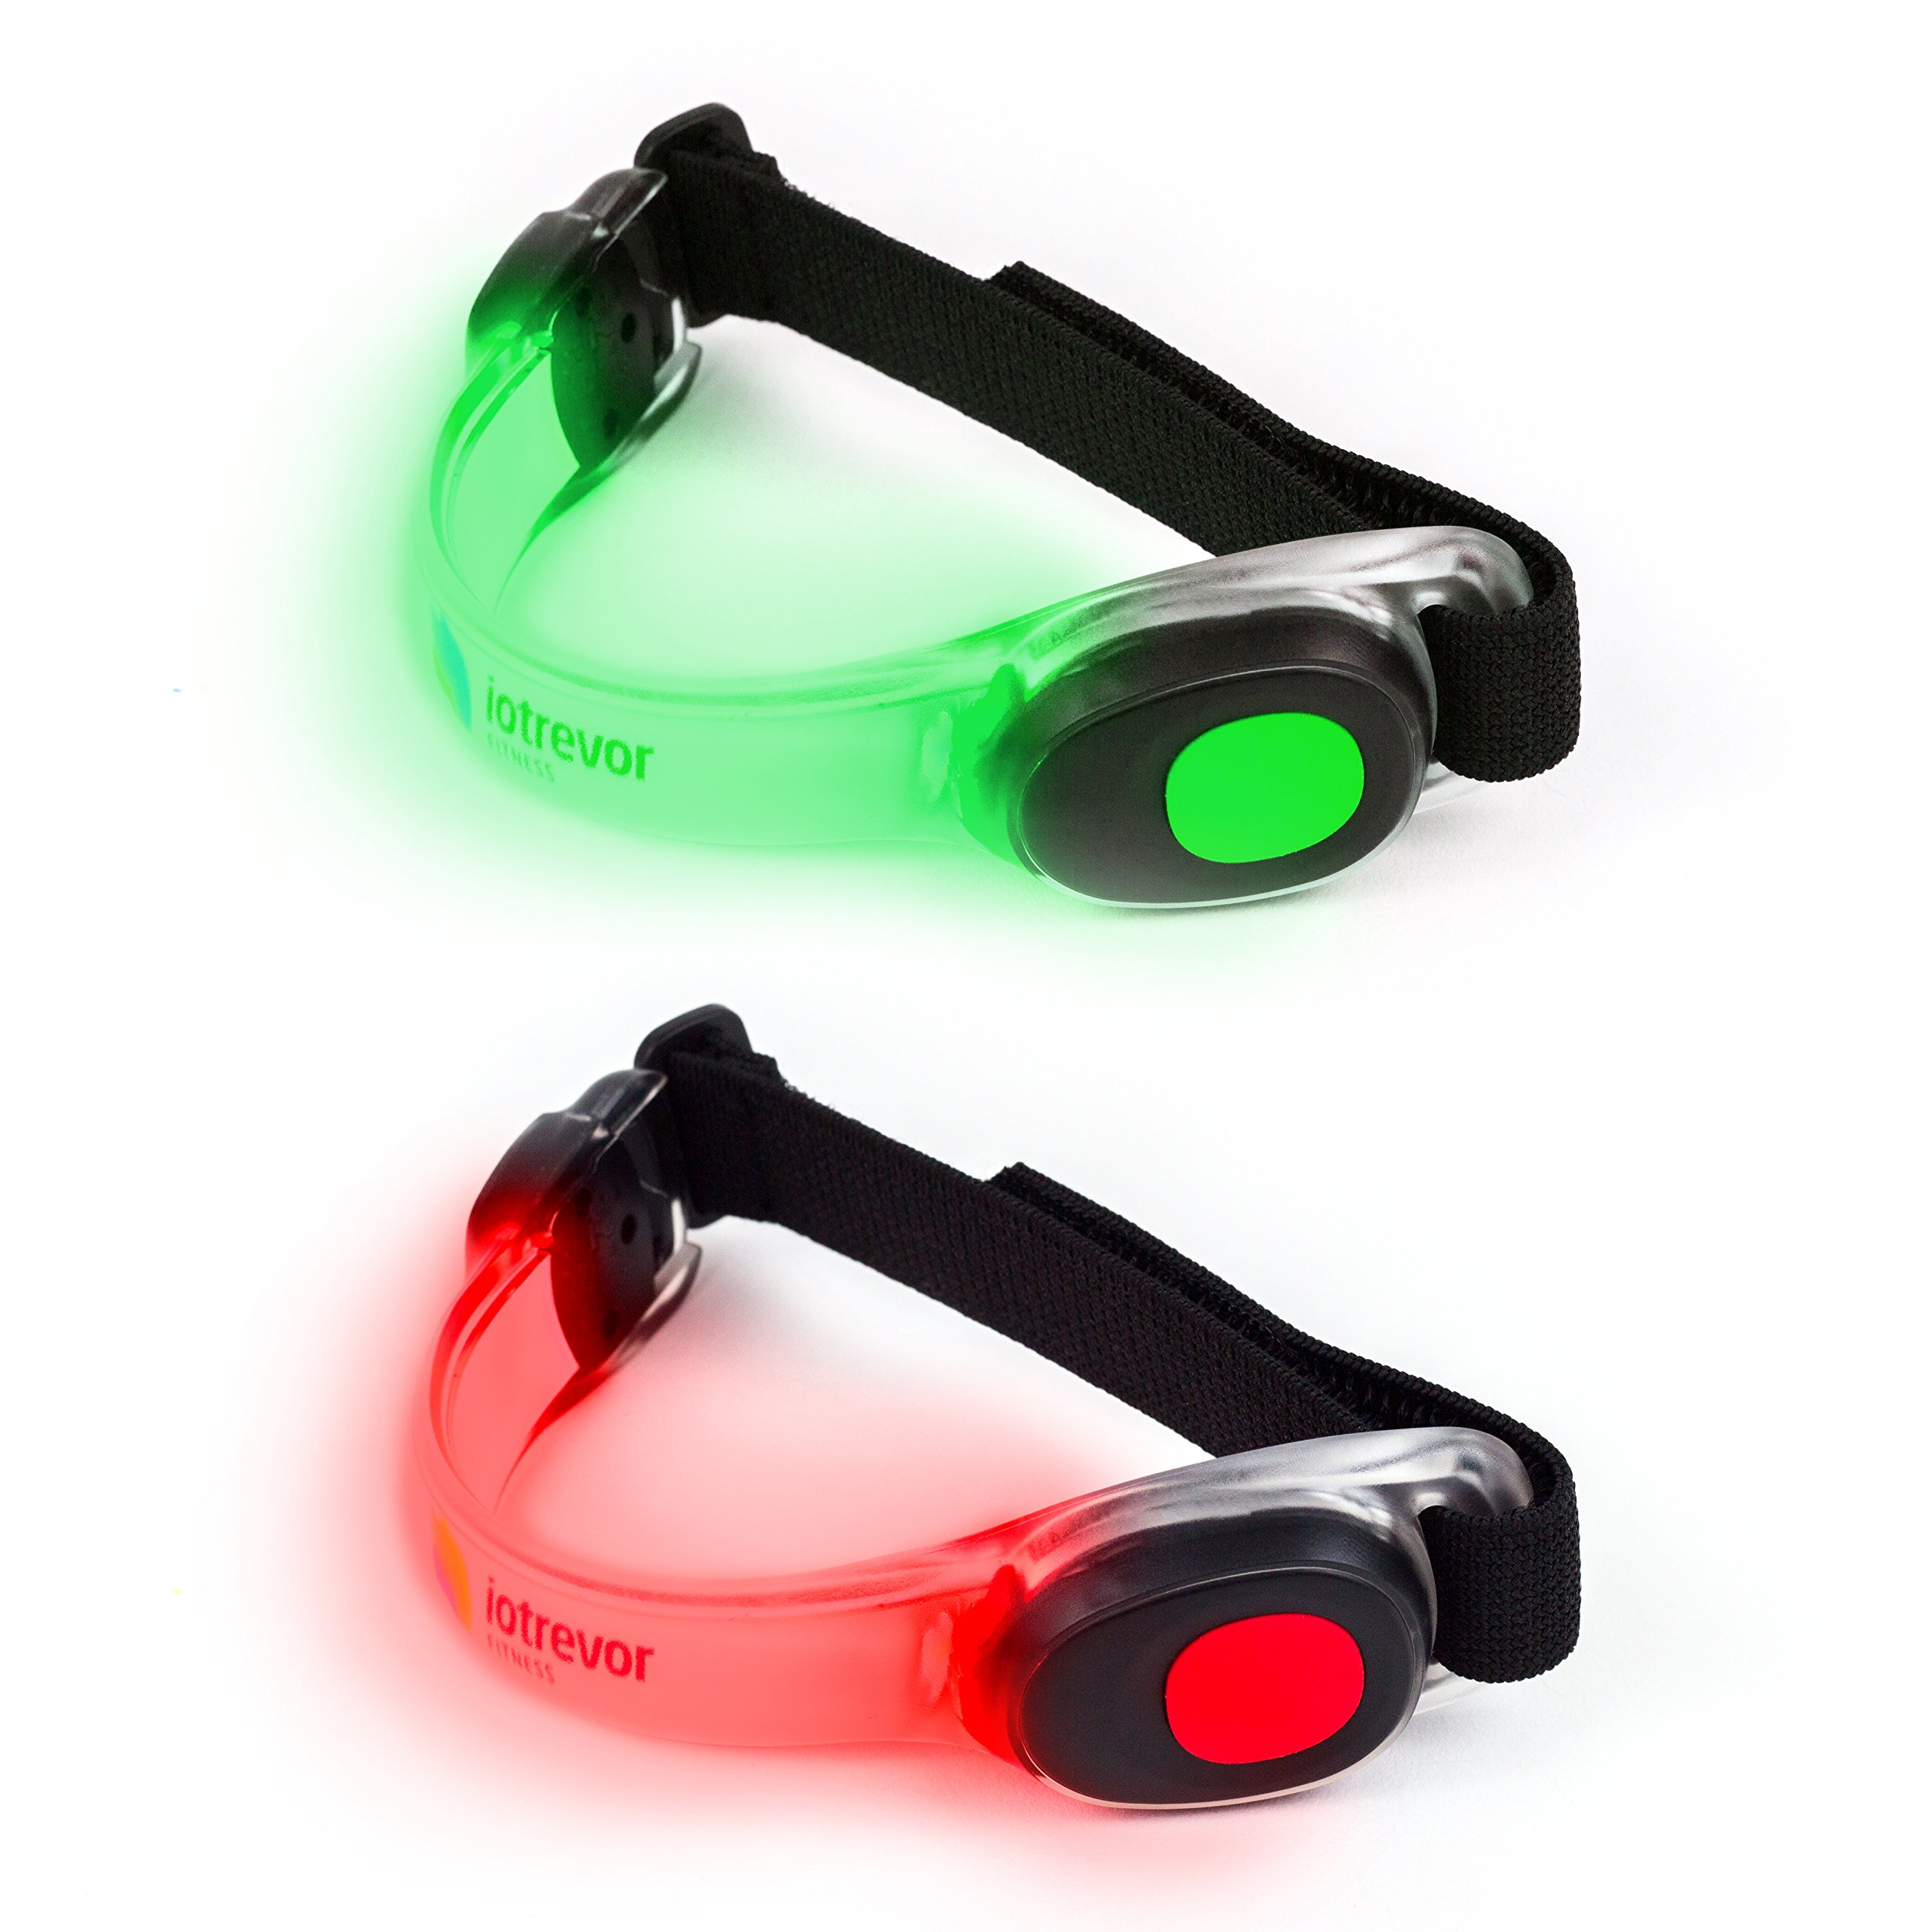 69aea95bfb0 iotrevor fitness Reflective Running Gear - Fashionable Running Lights for  Runners by (Set of 2)